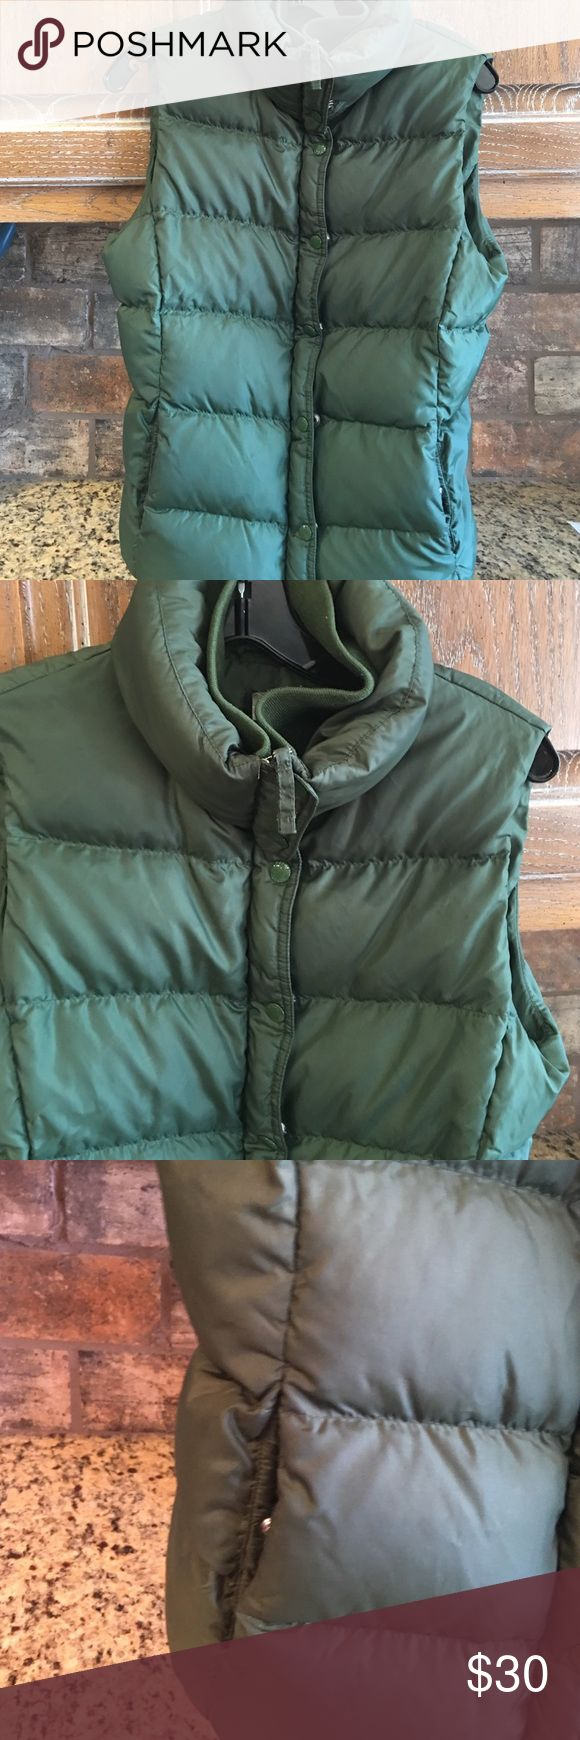 J Crew green puffer Down vest Sz med J Crew puffer vest. Sz med. good condition no holes or stains. Down filled. Bust 36 length 24 j crew Jackets & Coats Vests